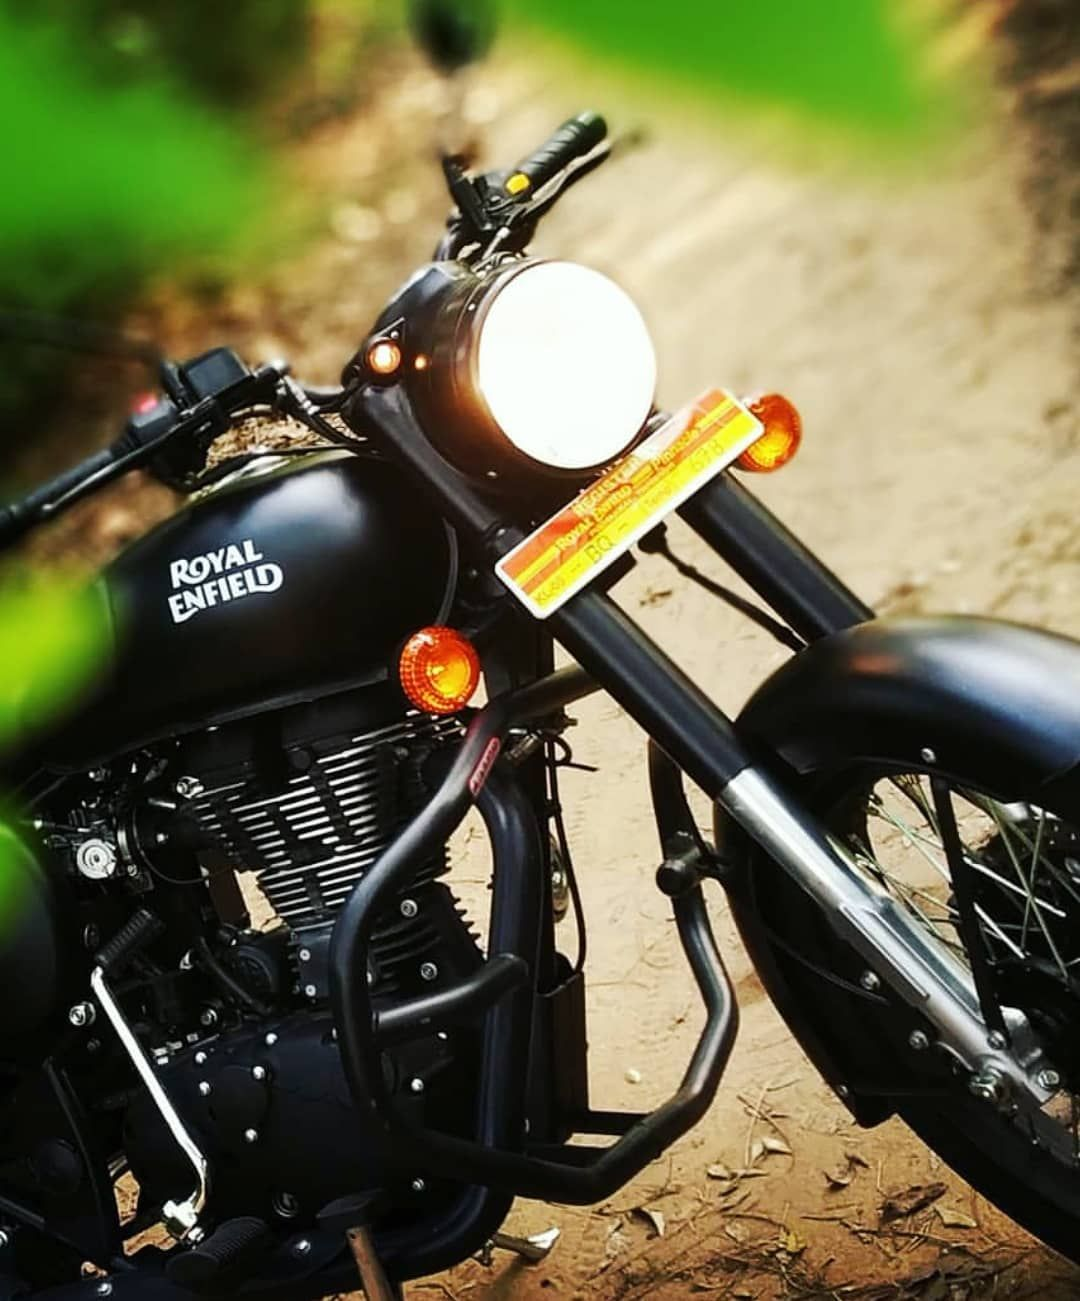 Black Beauty Royalenfield Bullet Bullet Royal Enfield Hd Wallpapers Enfield Classic Bullet Bike Royal Enfield